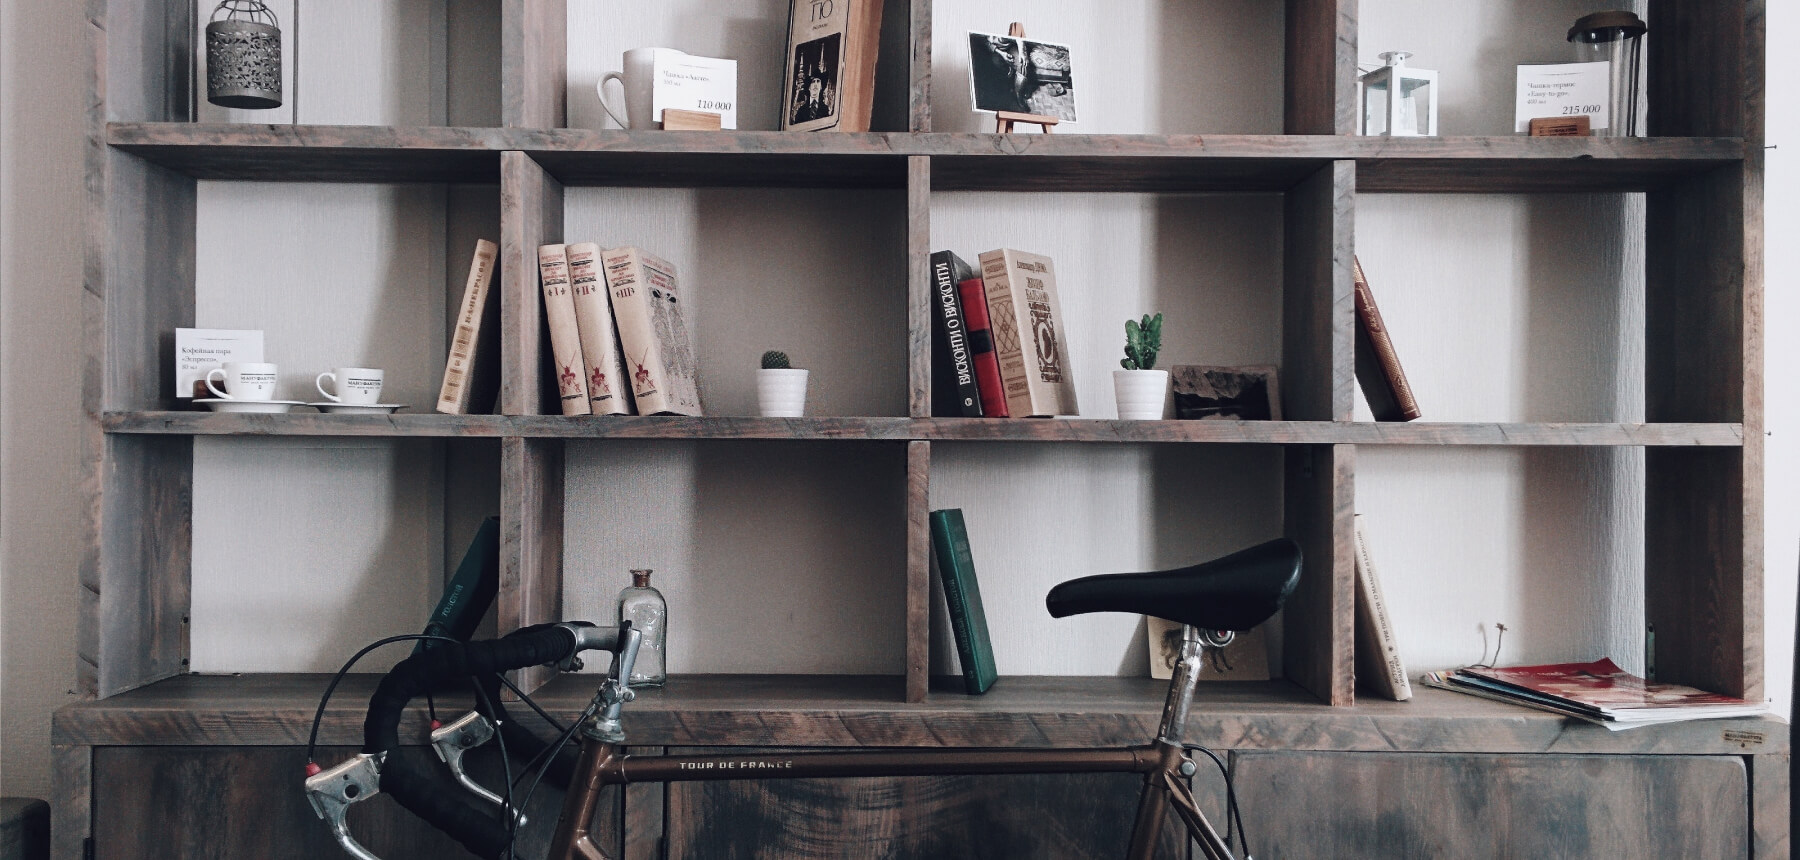 Bike and bookshelf